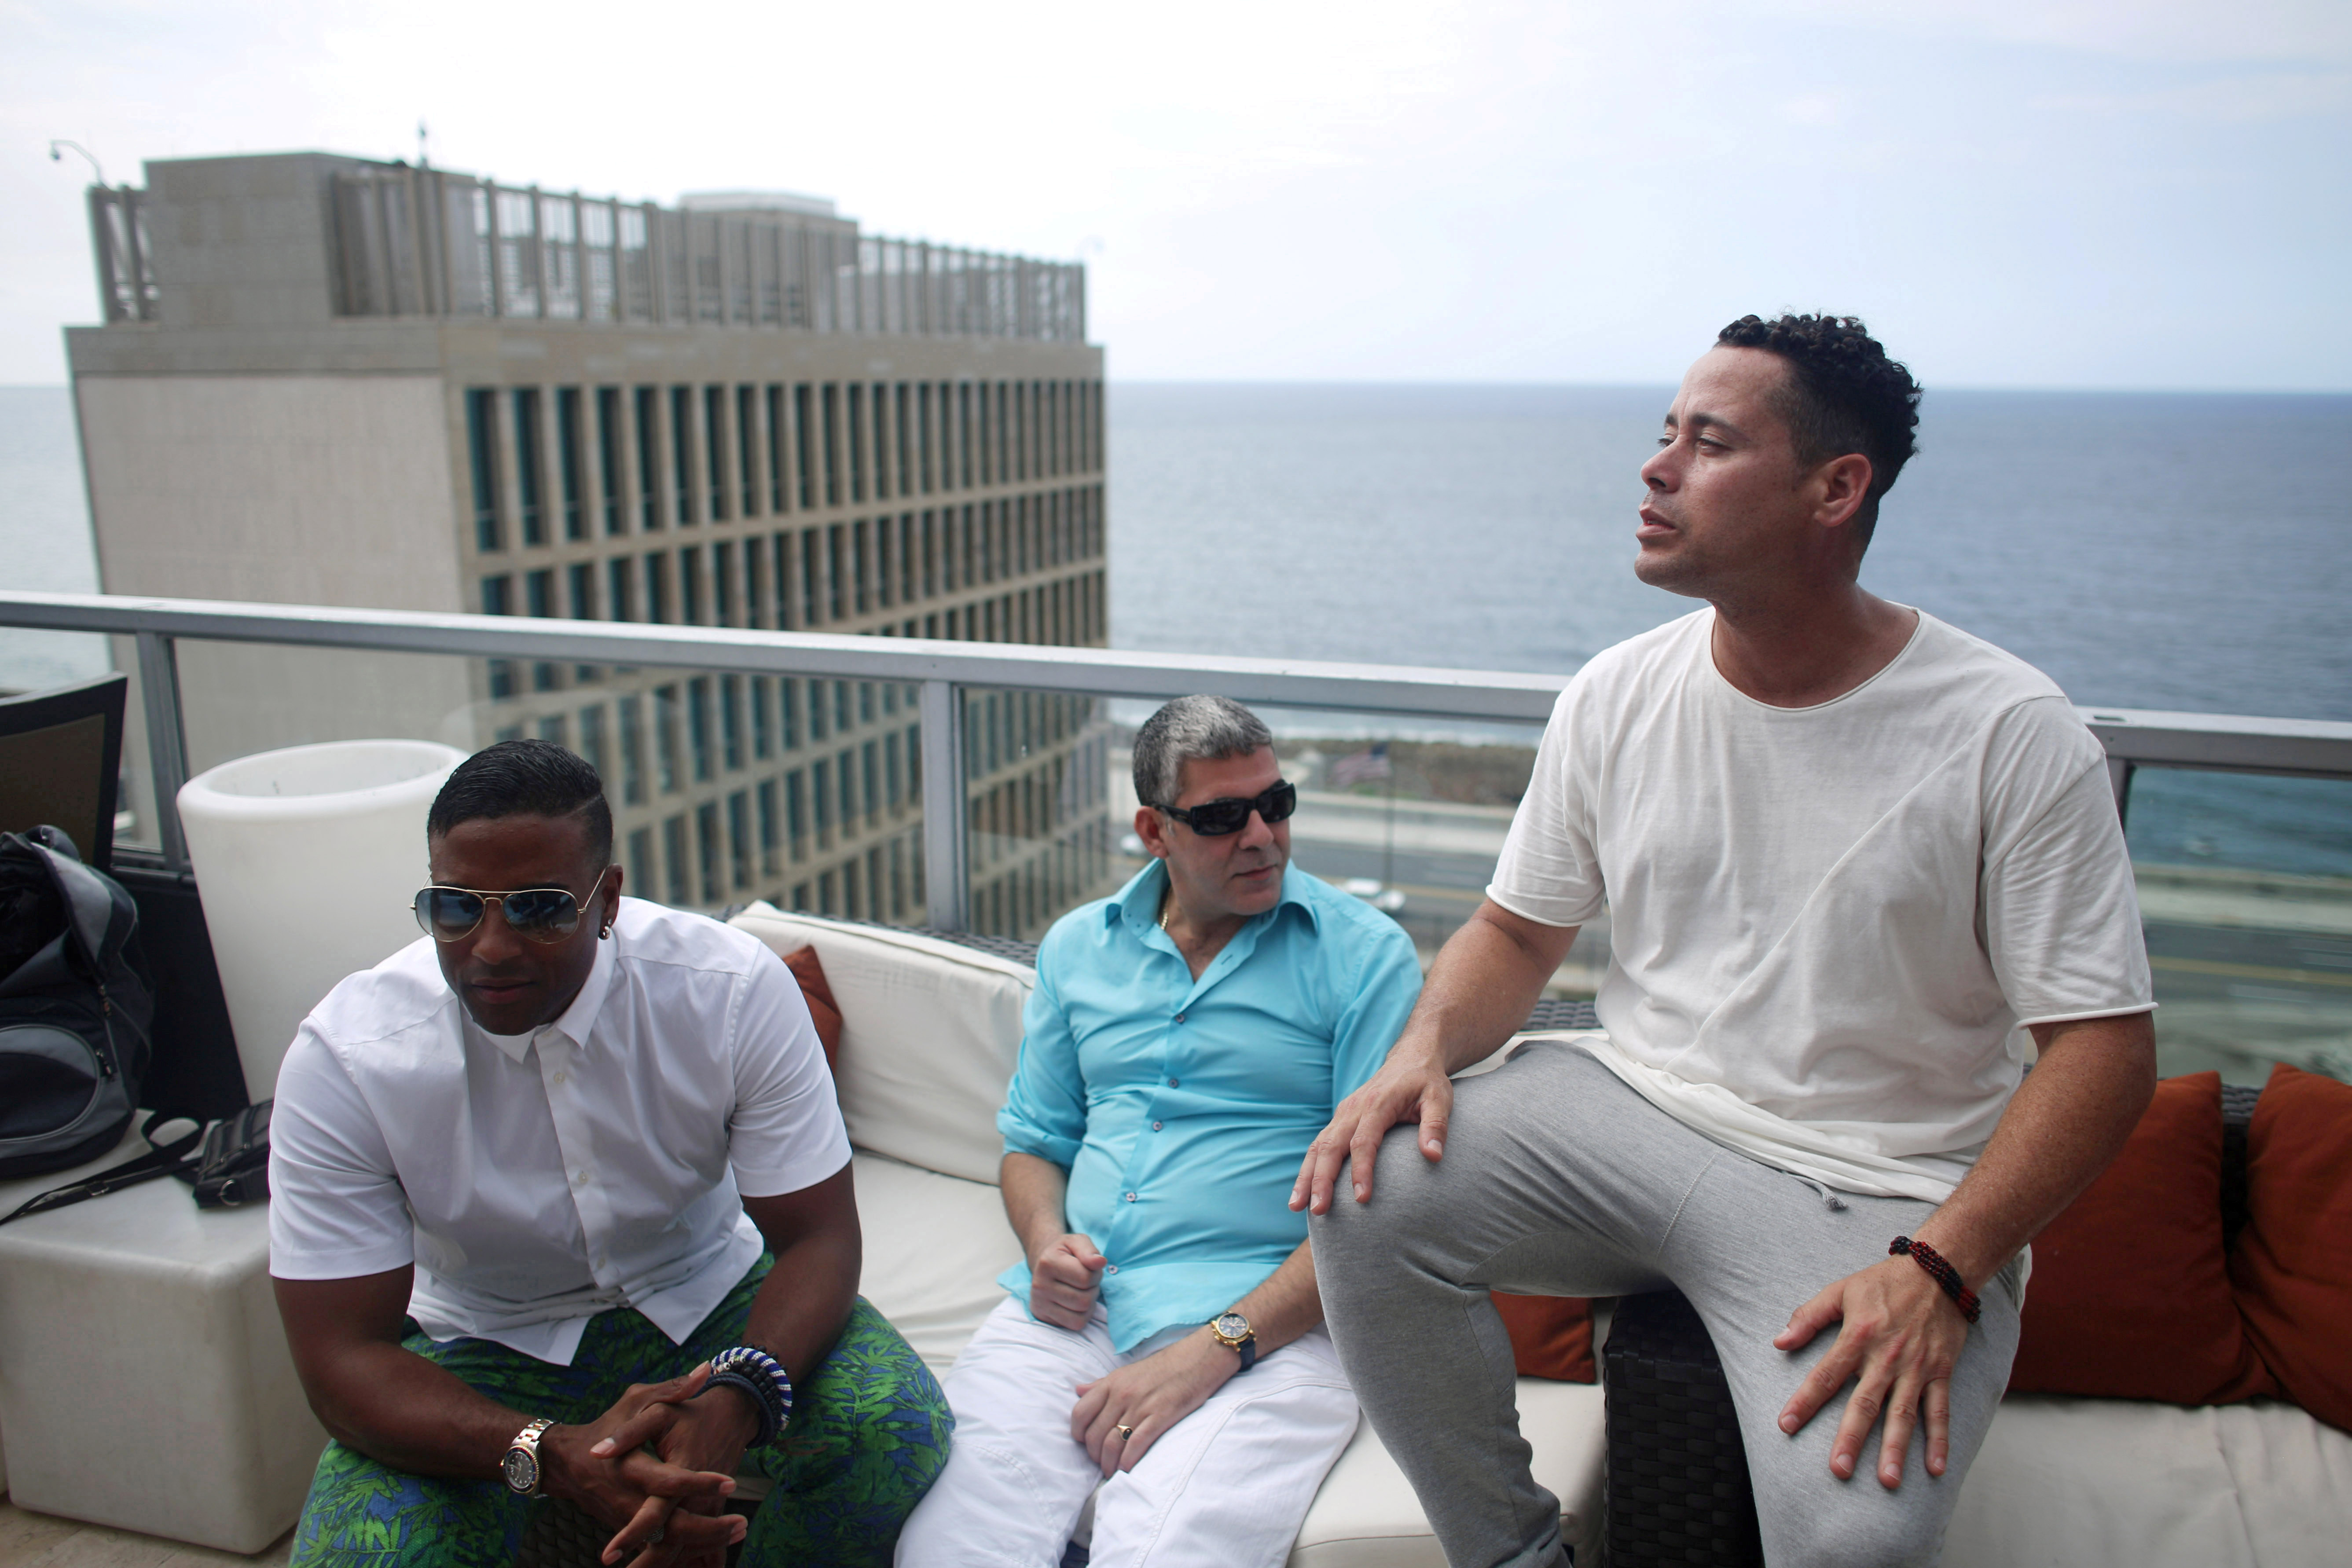 (L-R) Members of the Cuban fusion group Orishas - Yotuel, Roldan and Ruzzo - give an interview from the top of a building in Havana, Cuba, June 22, 2016. REUTERS/Alexandre Meneghini/File Photo